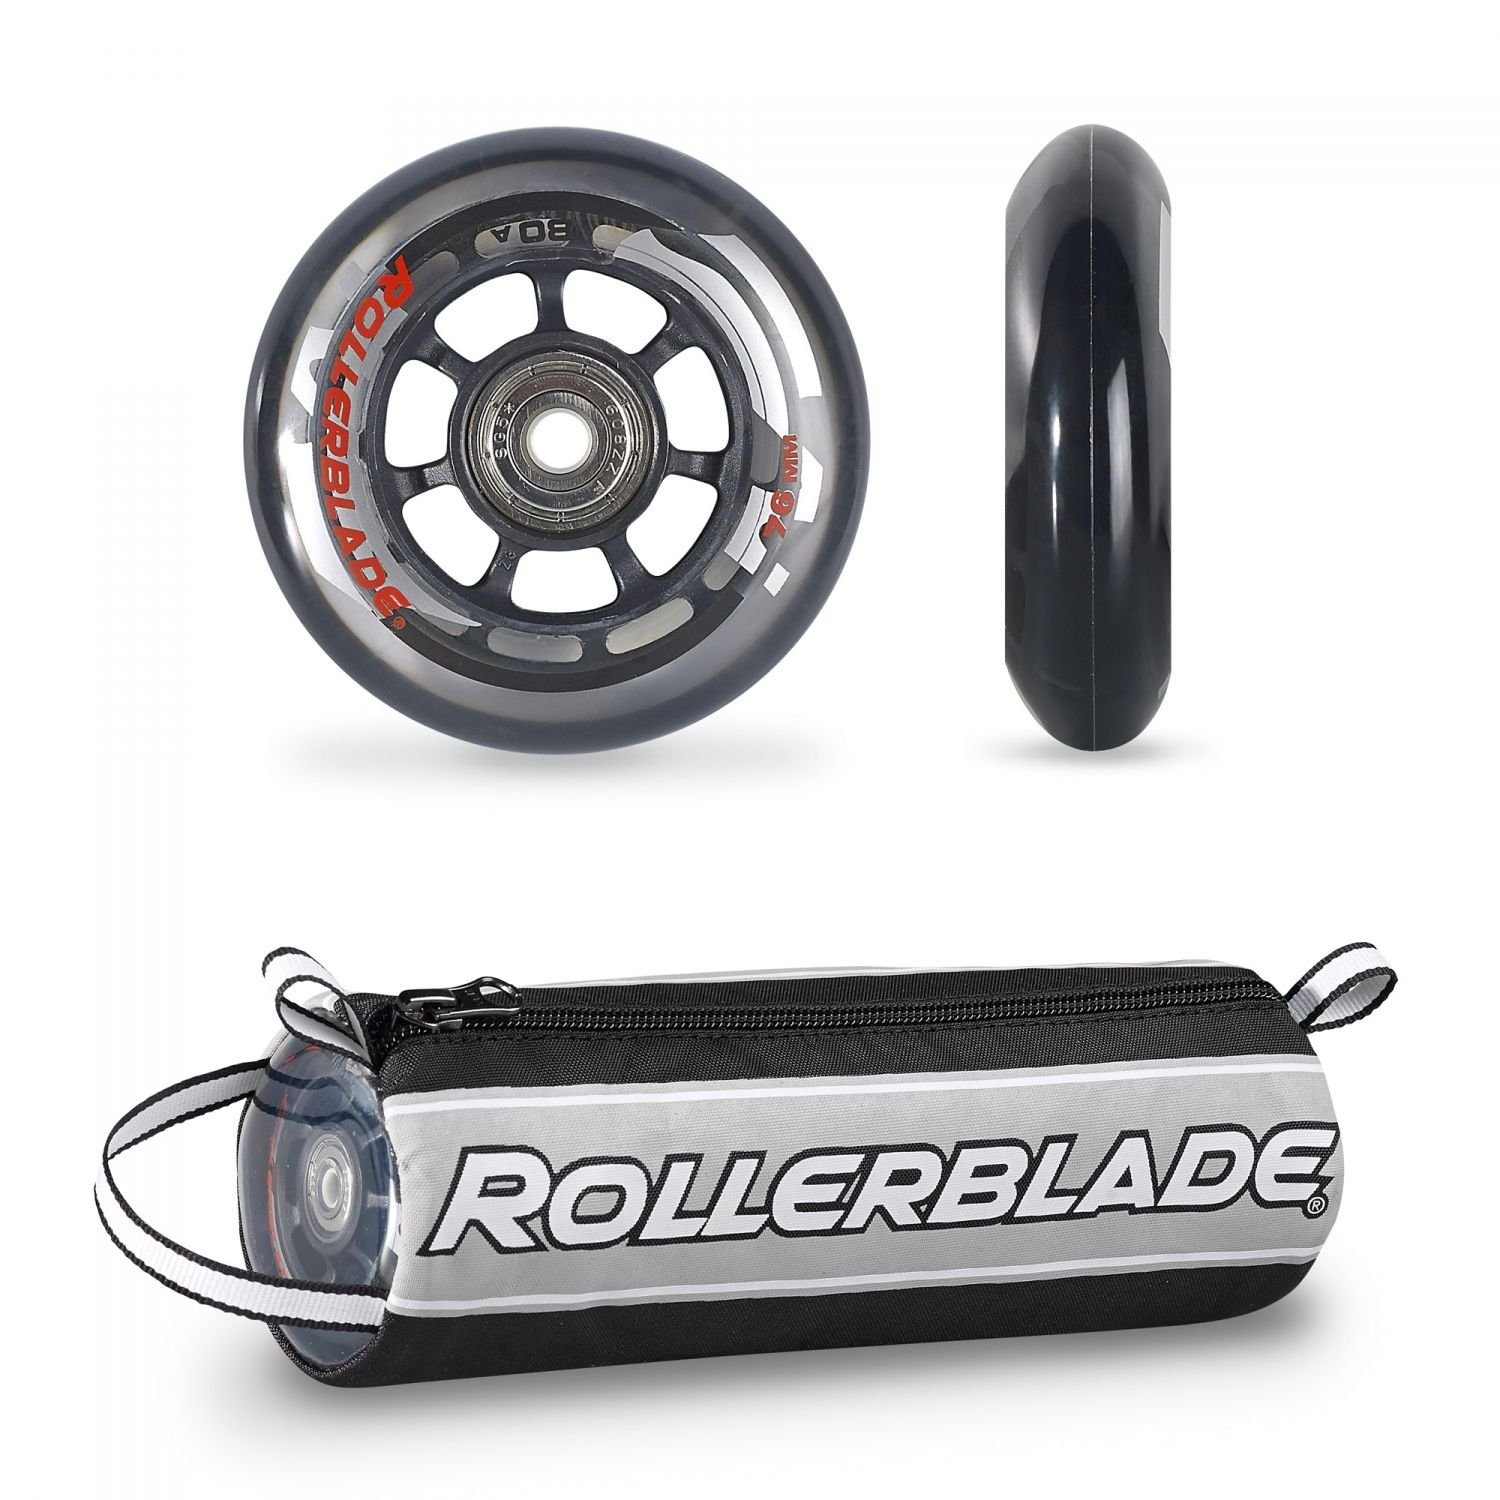 Rollerblade Wheelkit 76mm / 80A + SG5 SG5 Bearings ST & Headband Bundle by Rollerblade